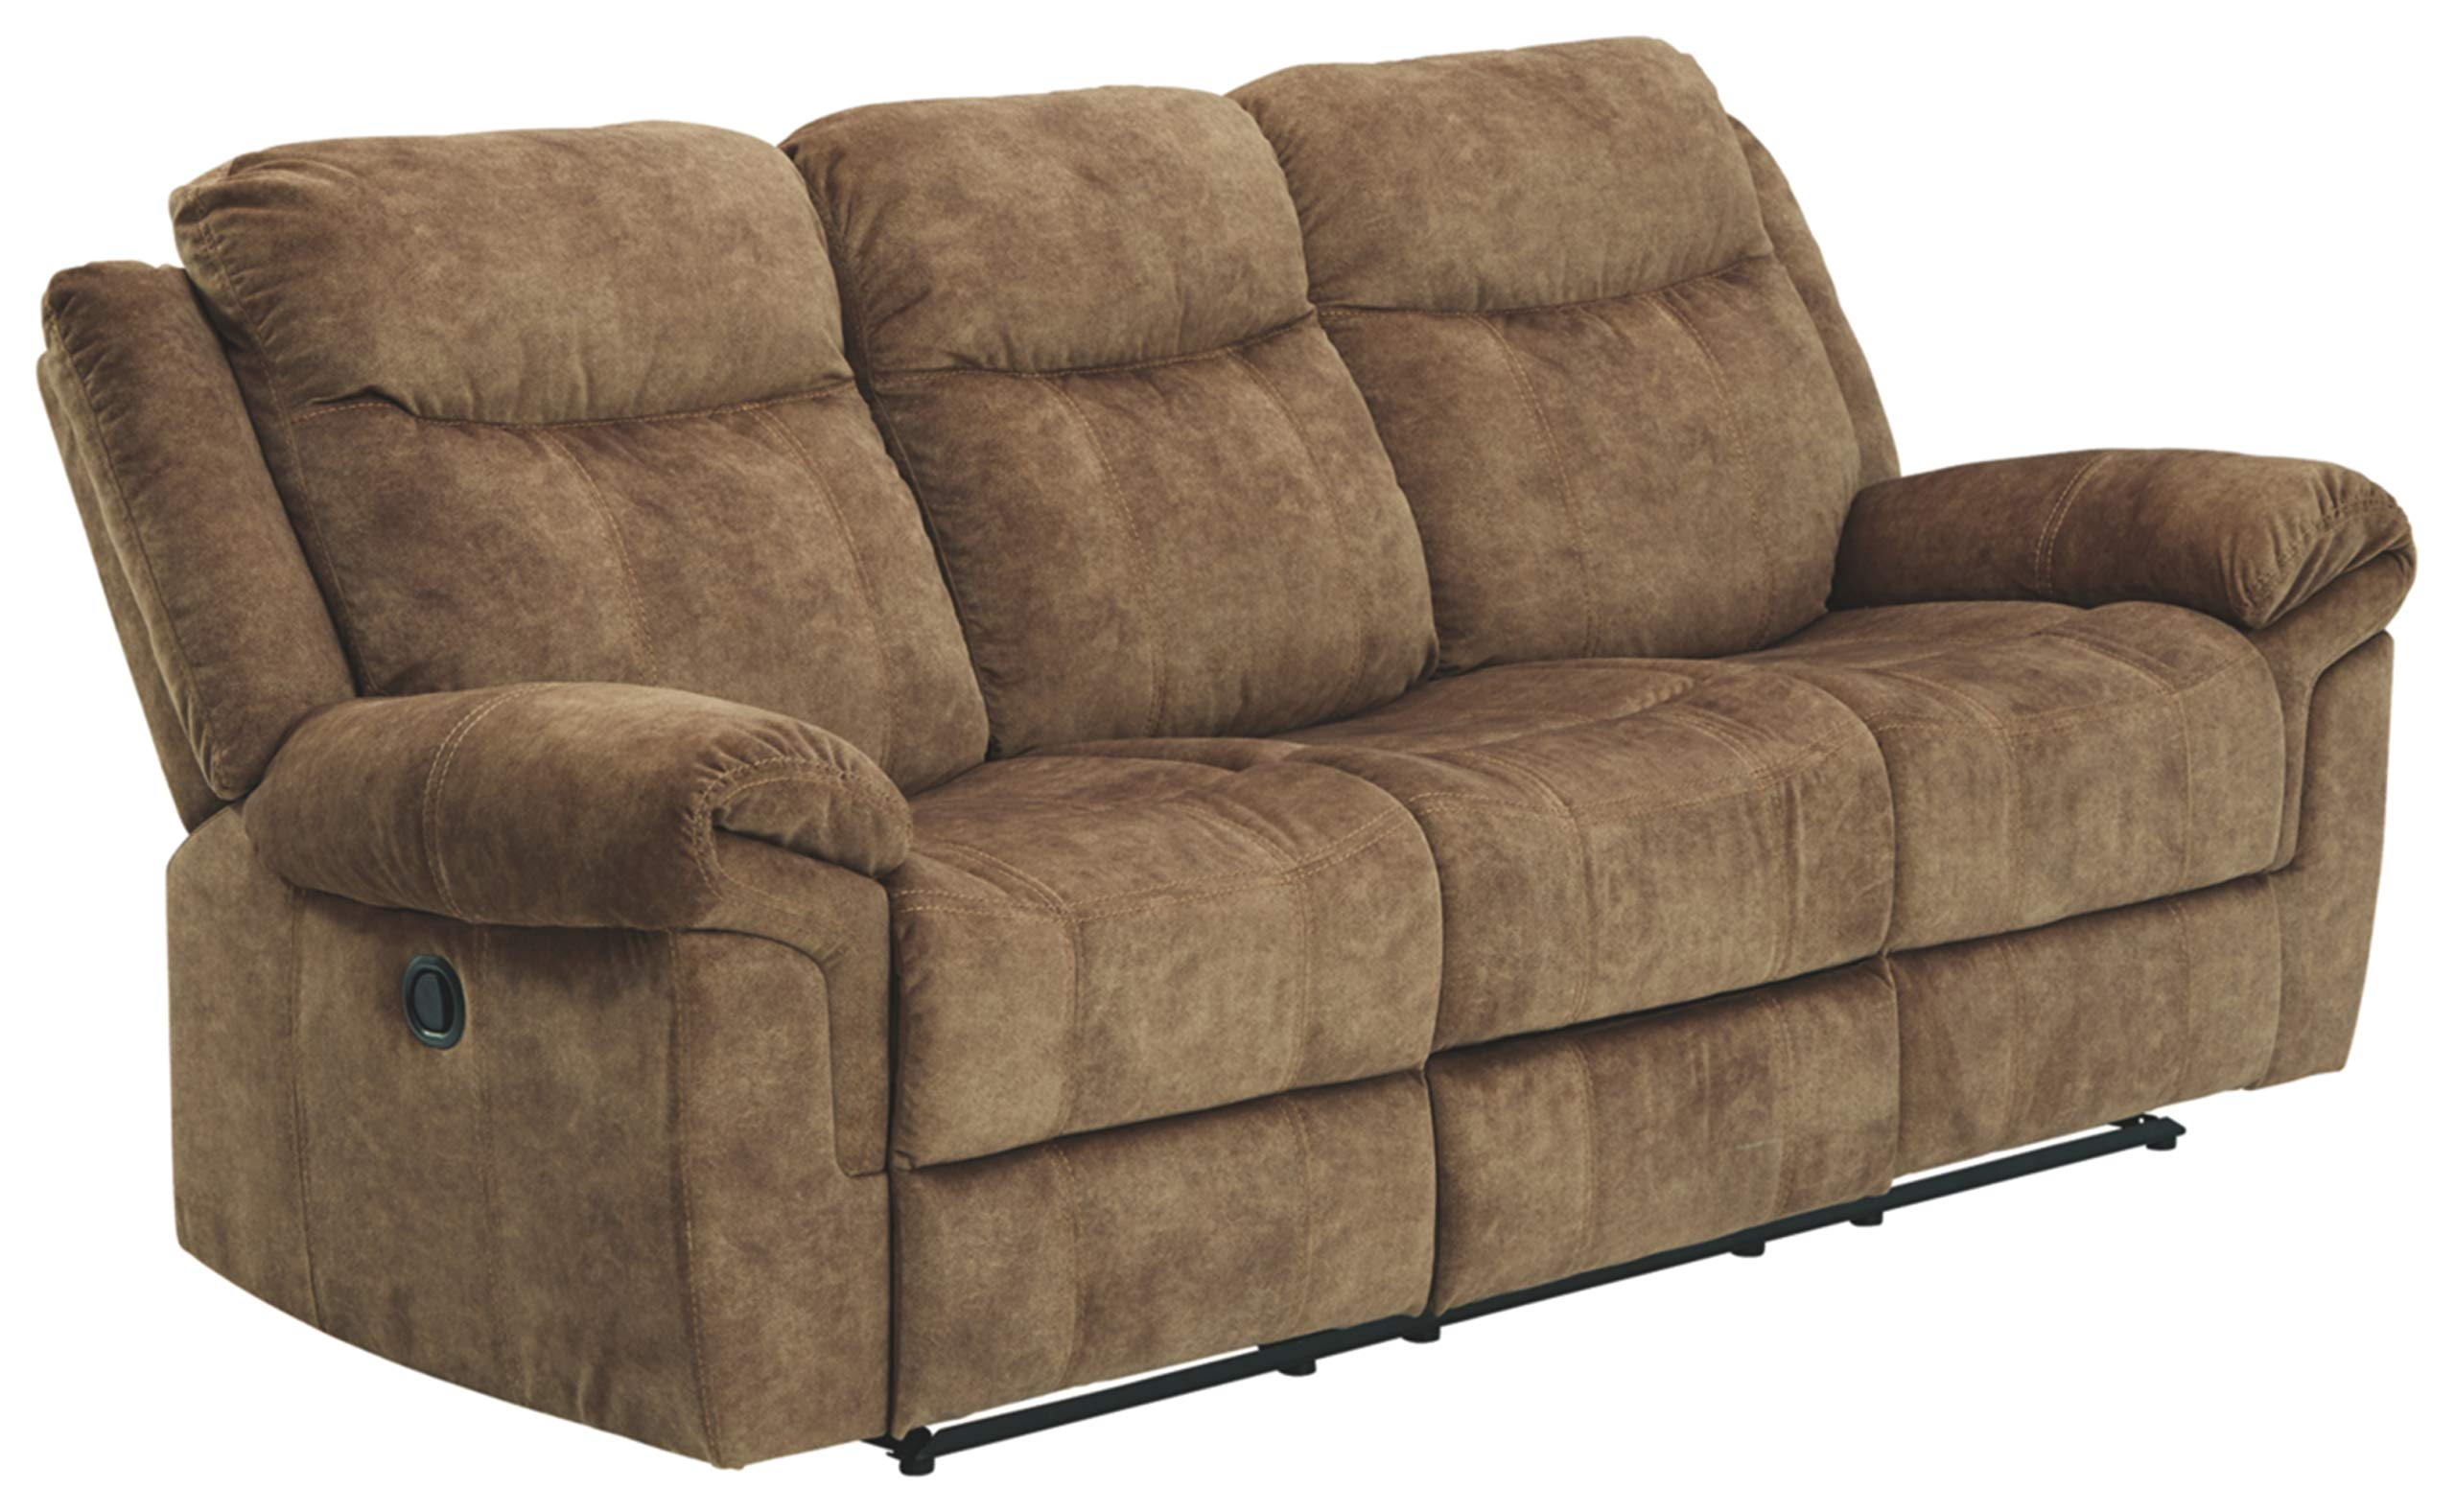 Signature Design by Ashley - Huddle-Up Casual Upholstered Reclining Sofa - Drop Down Table - Brown